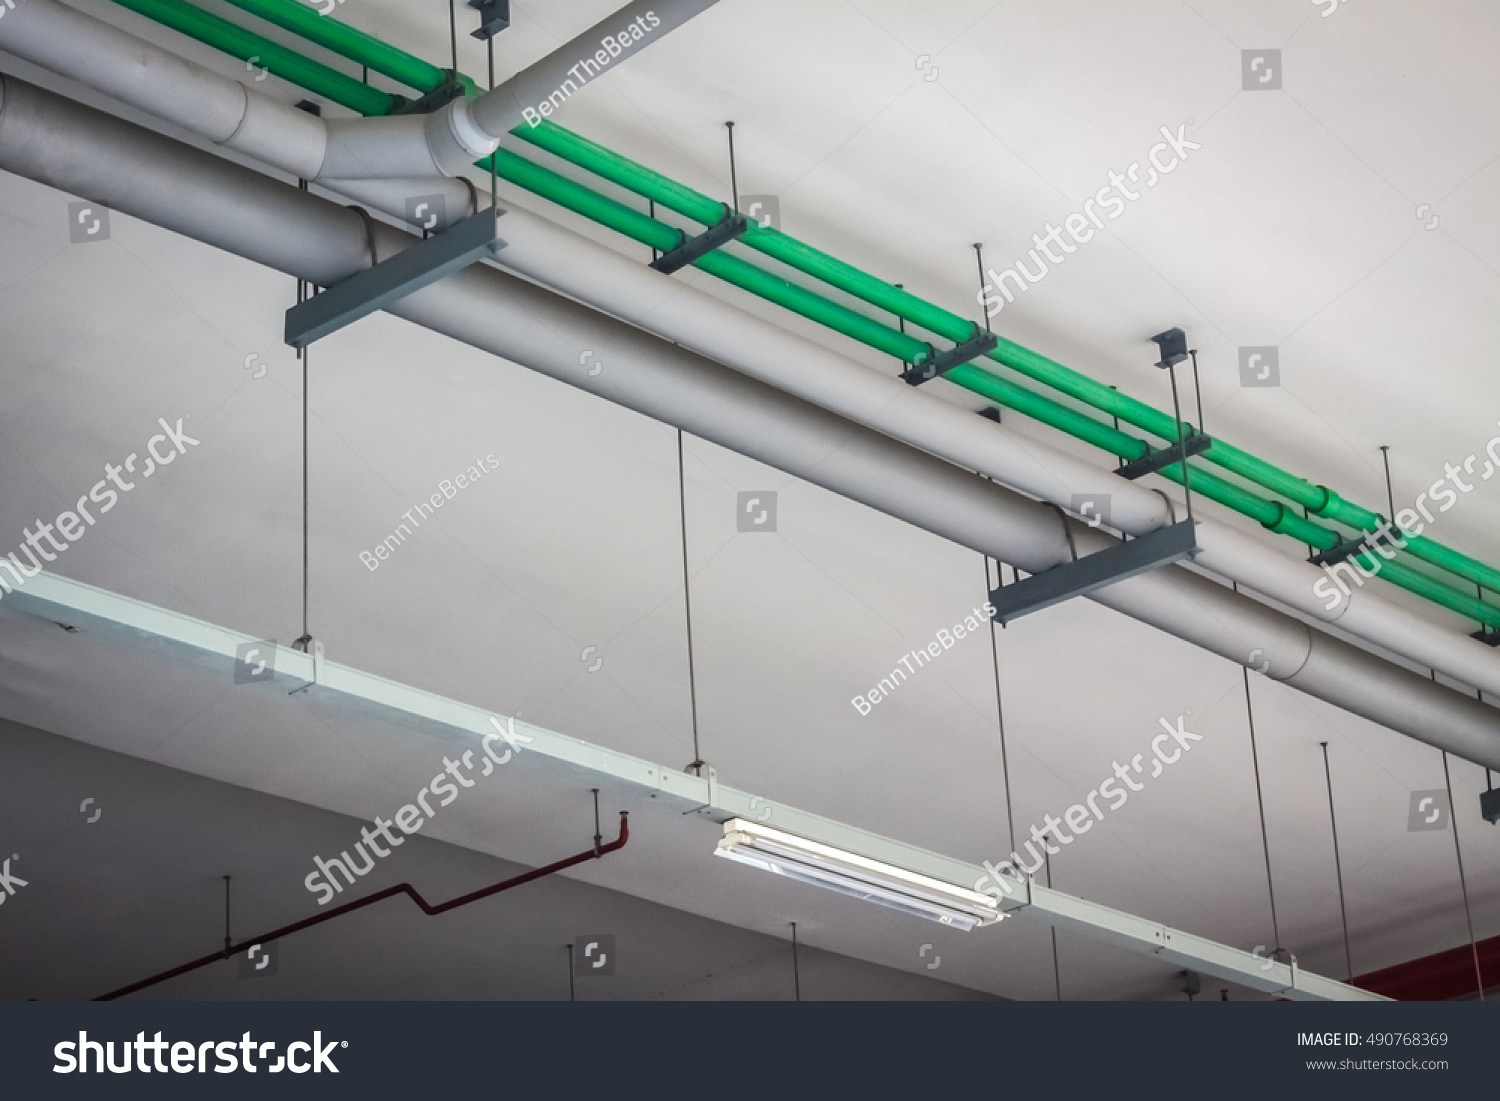 Electric System Industrial Steel Electric System Stock Photo ...